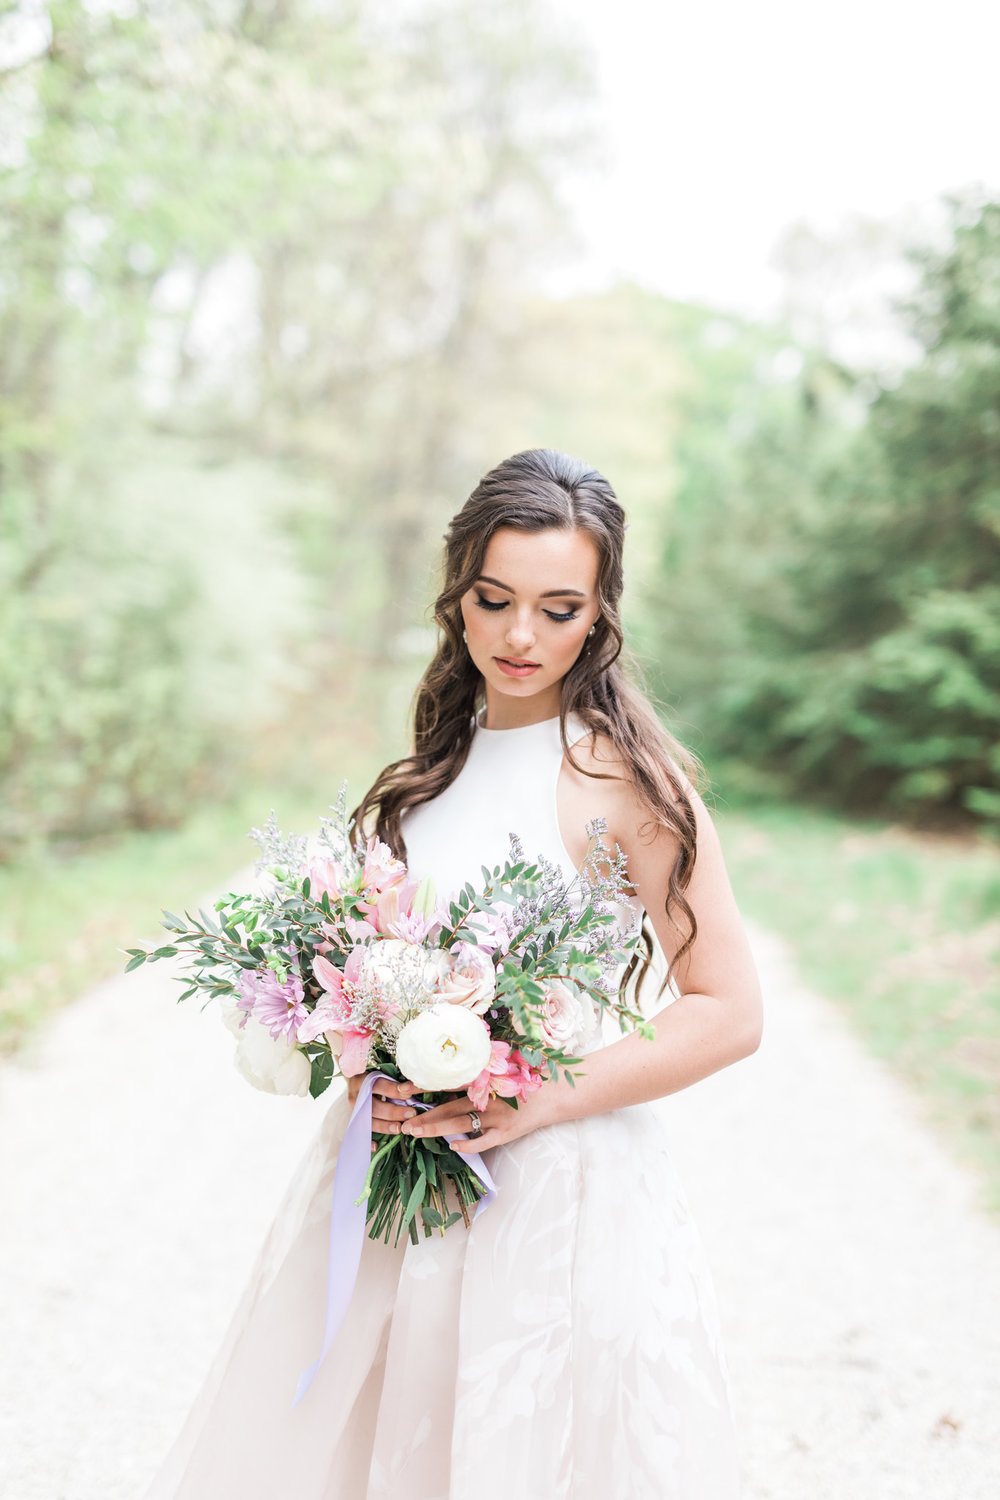 Bridal Portrait | Styled Wedding Shoot at Gable Hill Barn | Elegant Chic Wedding | Laurenda Marie Photography | West Michigan Wedding Photographer |